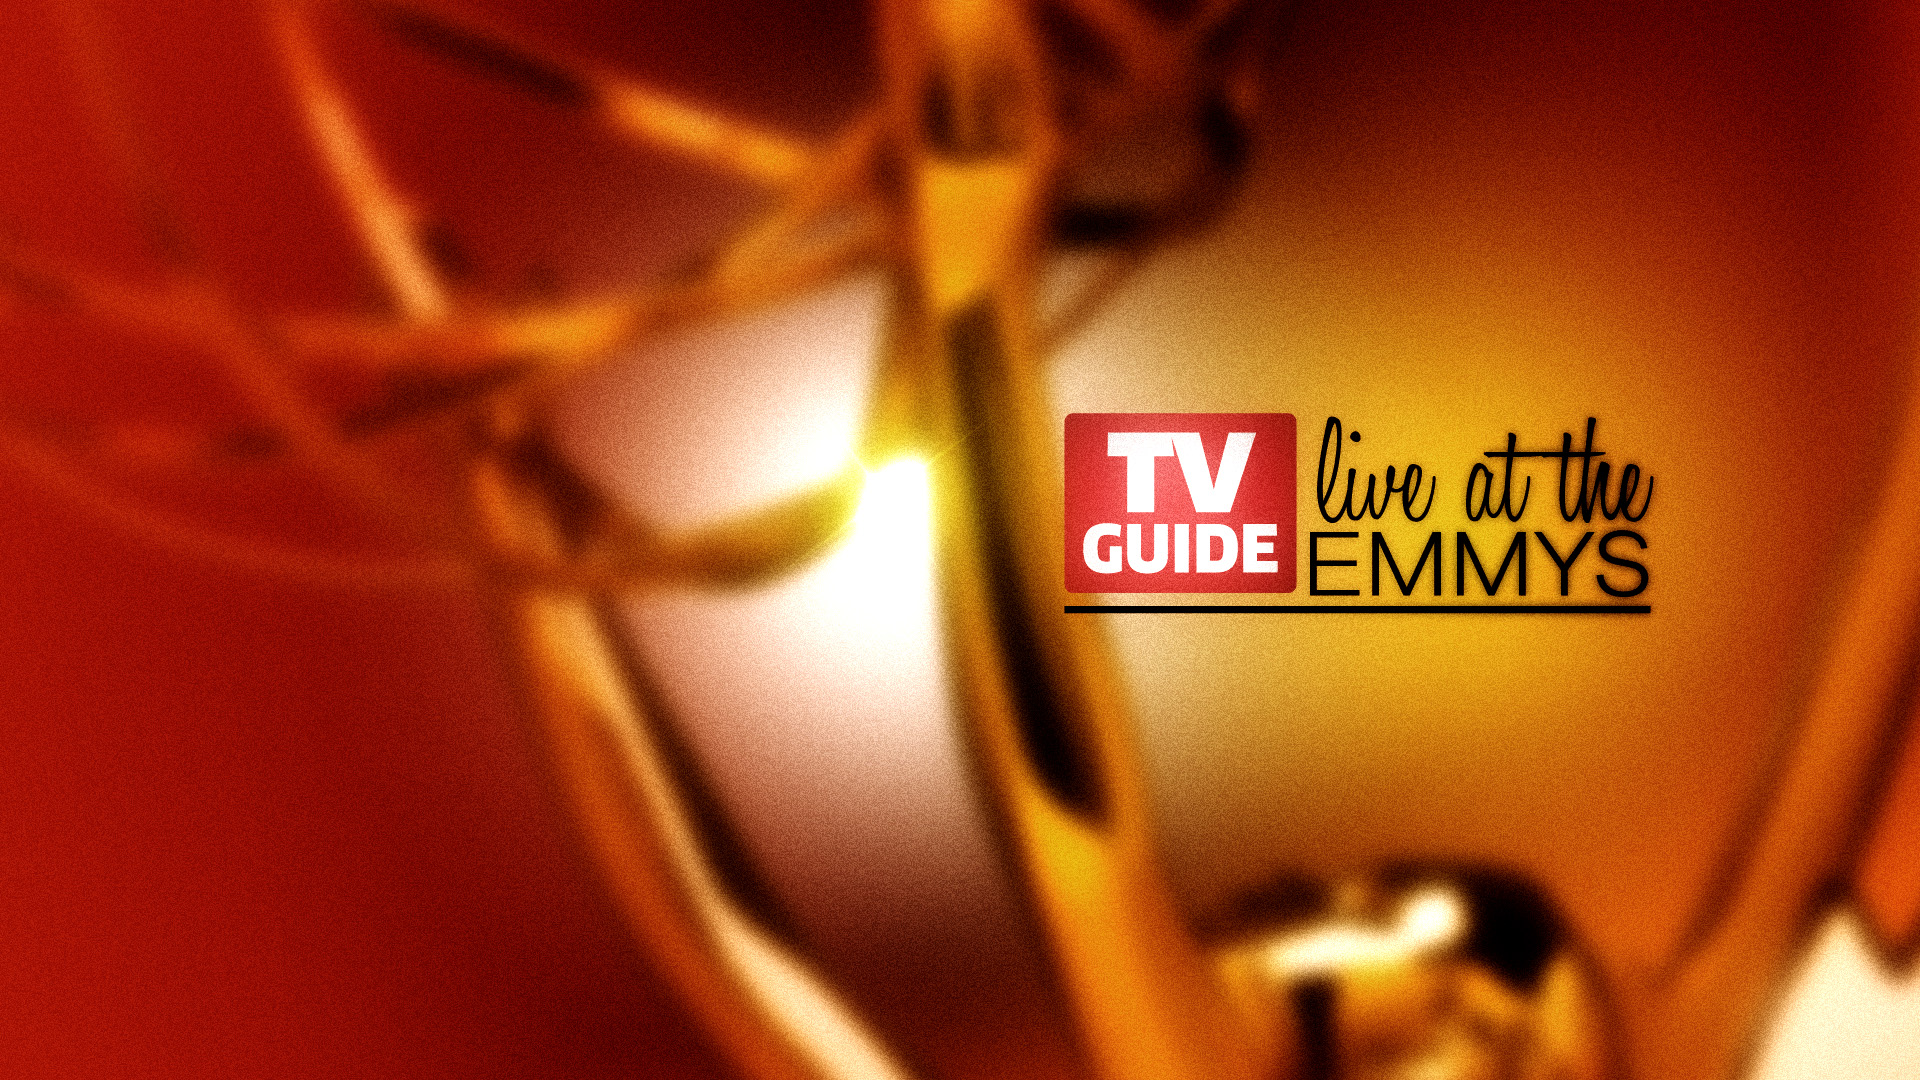 TVGuideEmmy_12_01.jpg